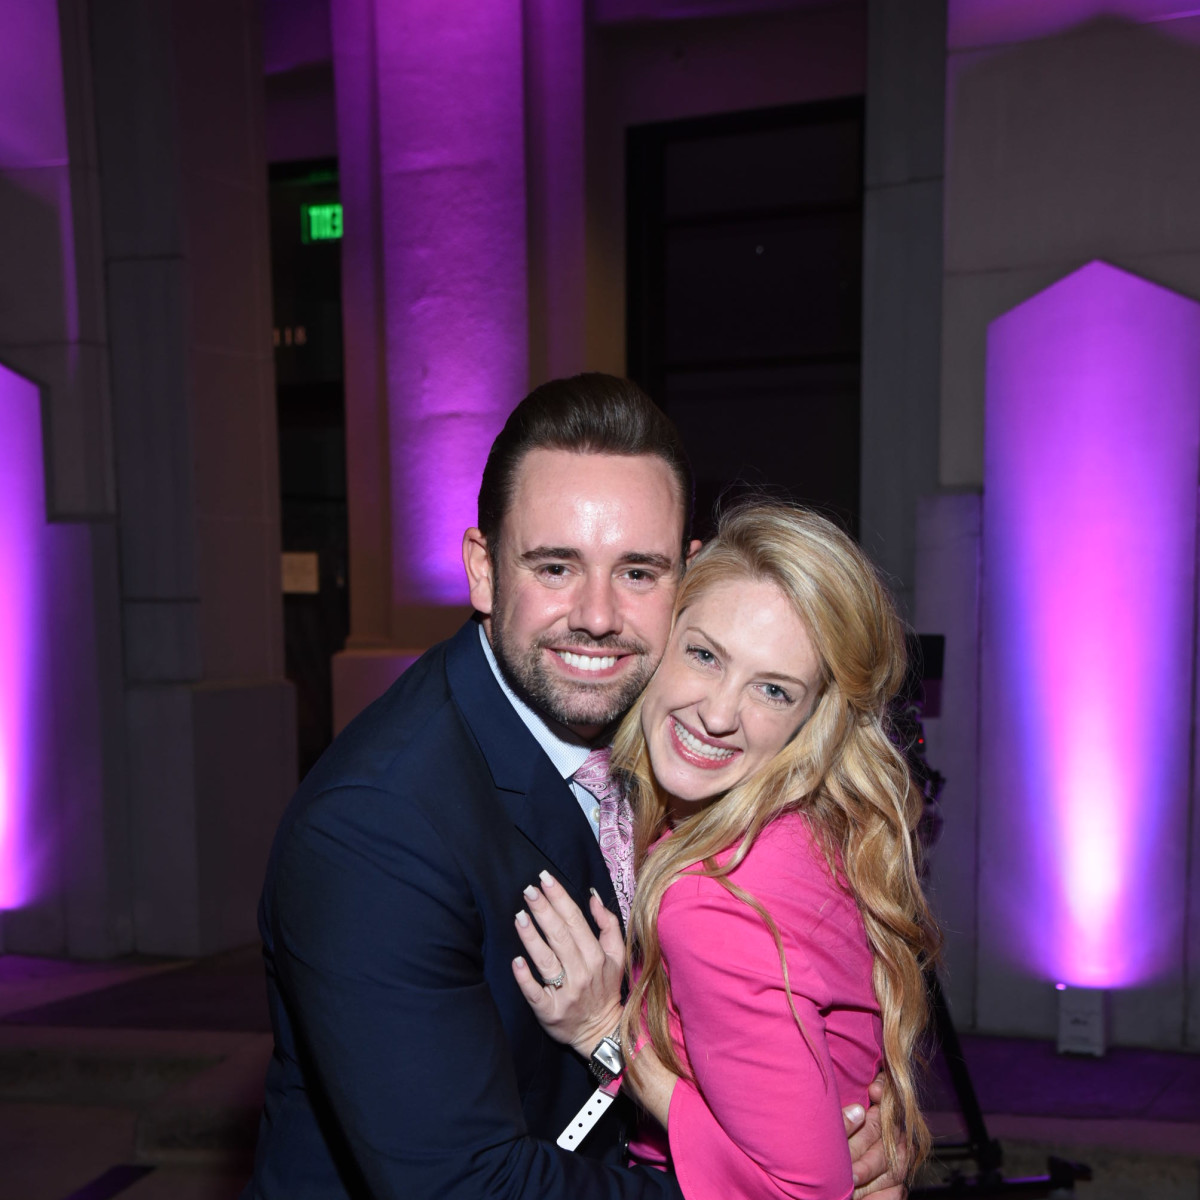 Pink Party 2018 West Ave Jacob frazelle. Stefanie frazelle.